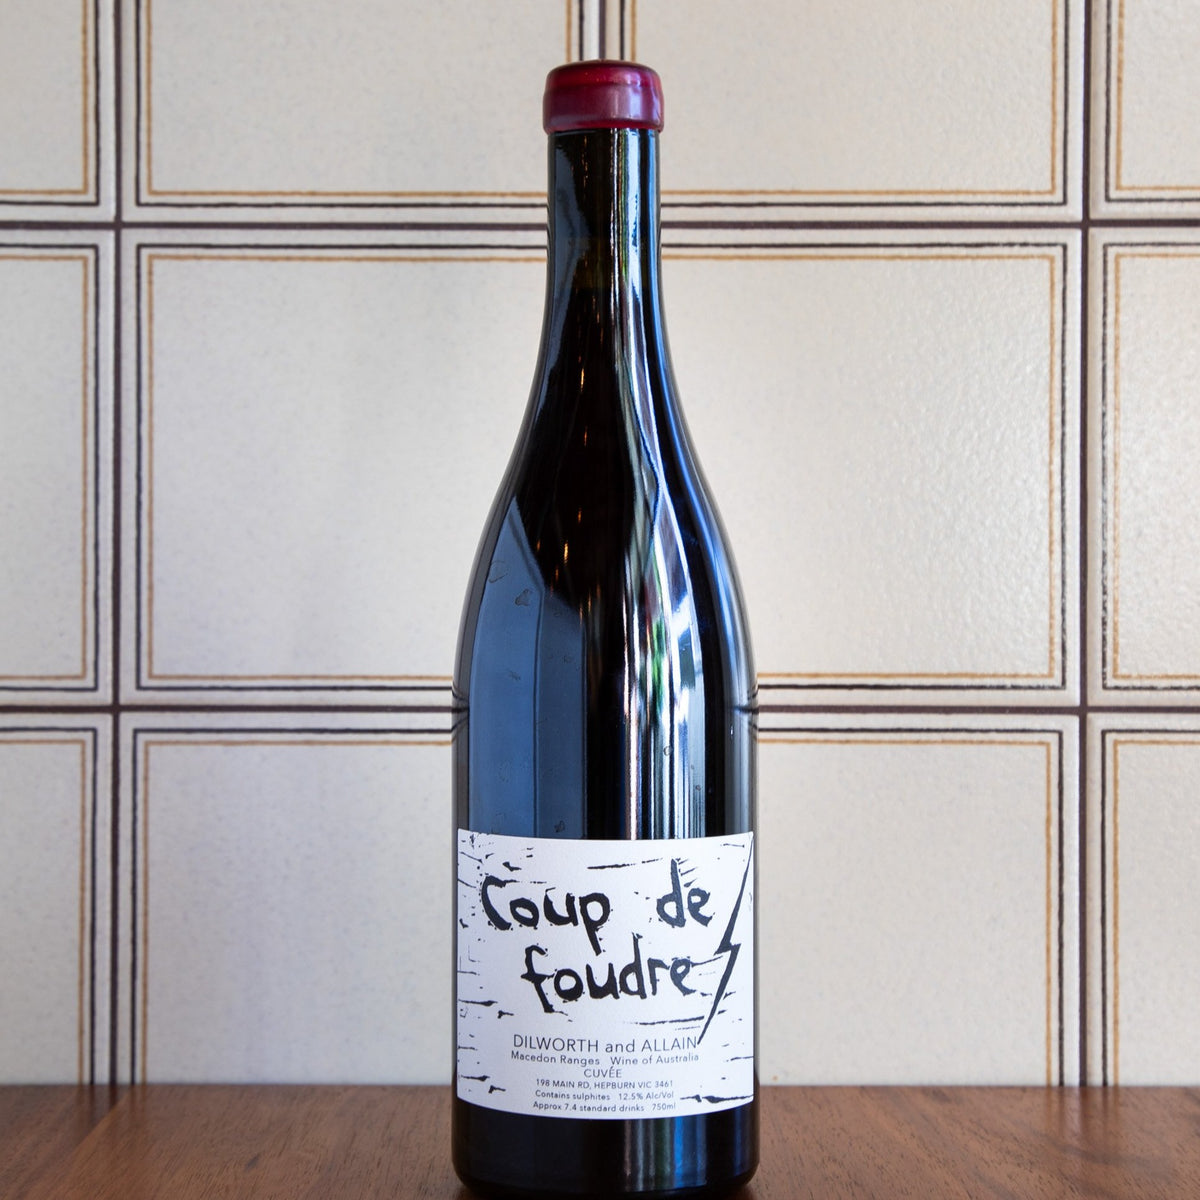 2019 Dilworth and Allain 'Coup de Foudre' Pinot Noir/Chardonnay